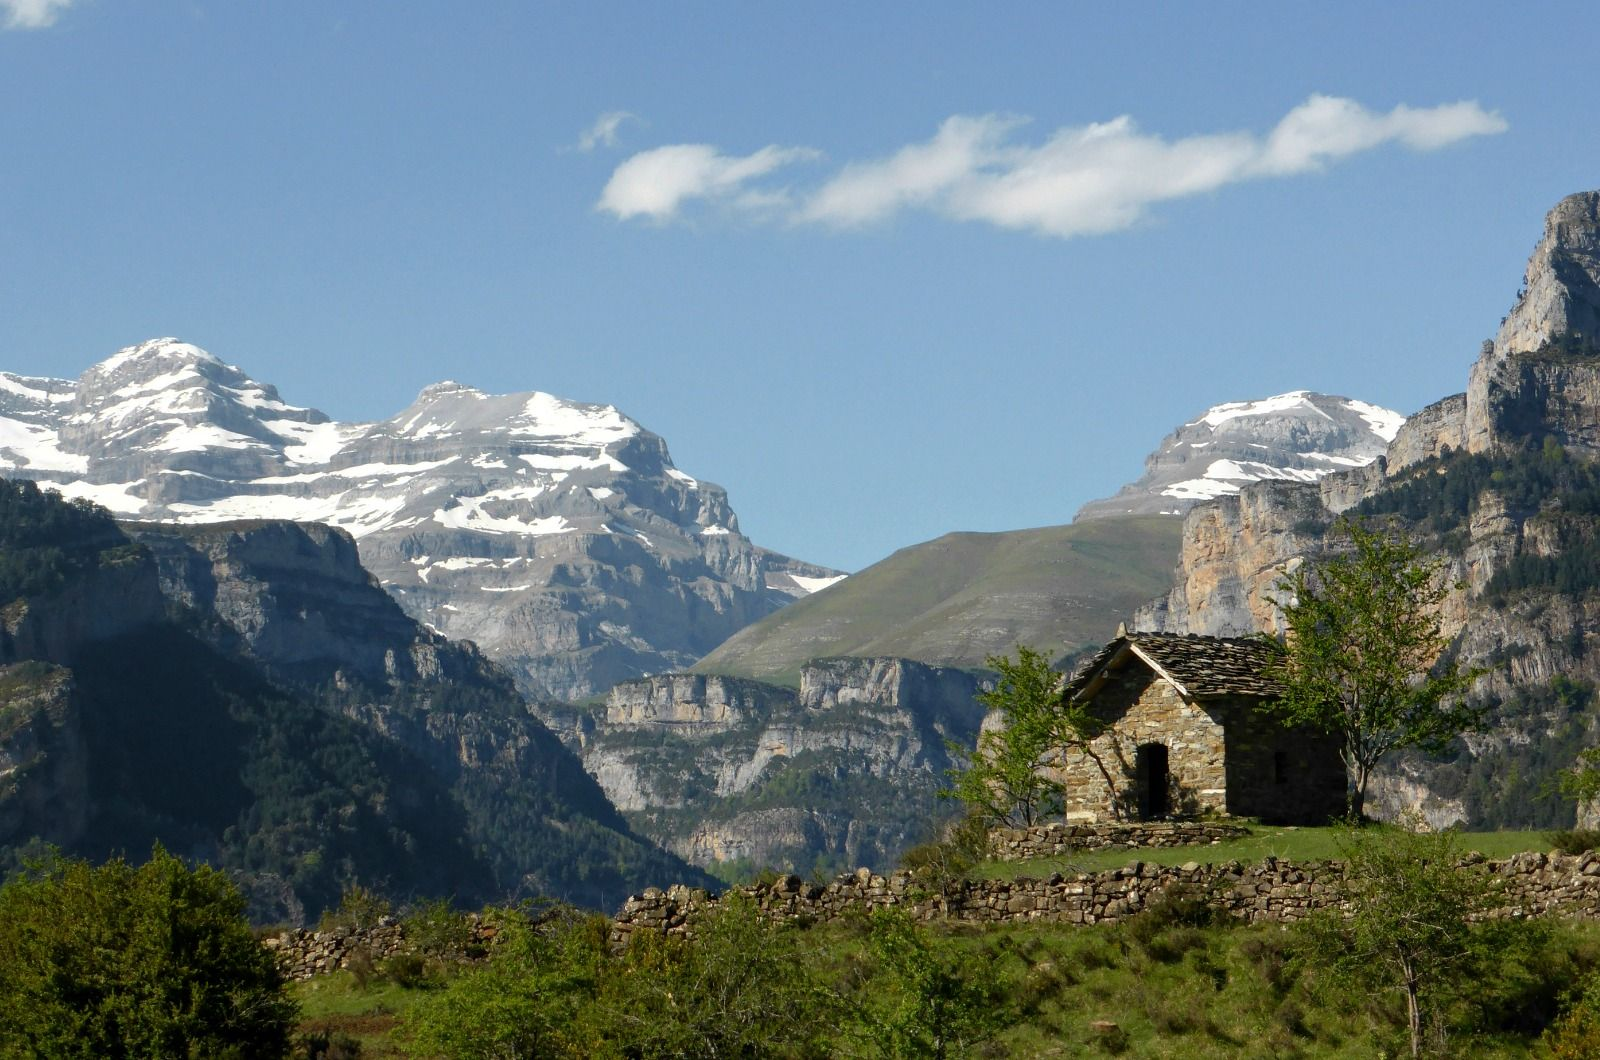 A view looking towards Monte Perdido in the Ordesa National Park on Aragon Active Learn Spanish Holiday